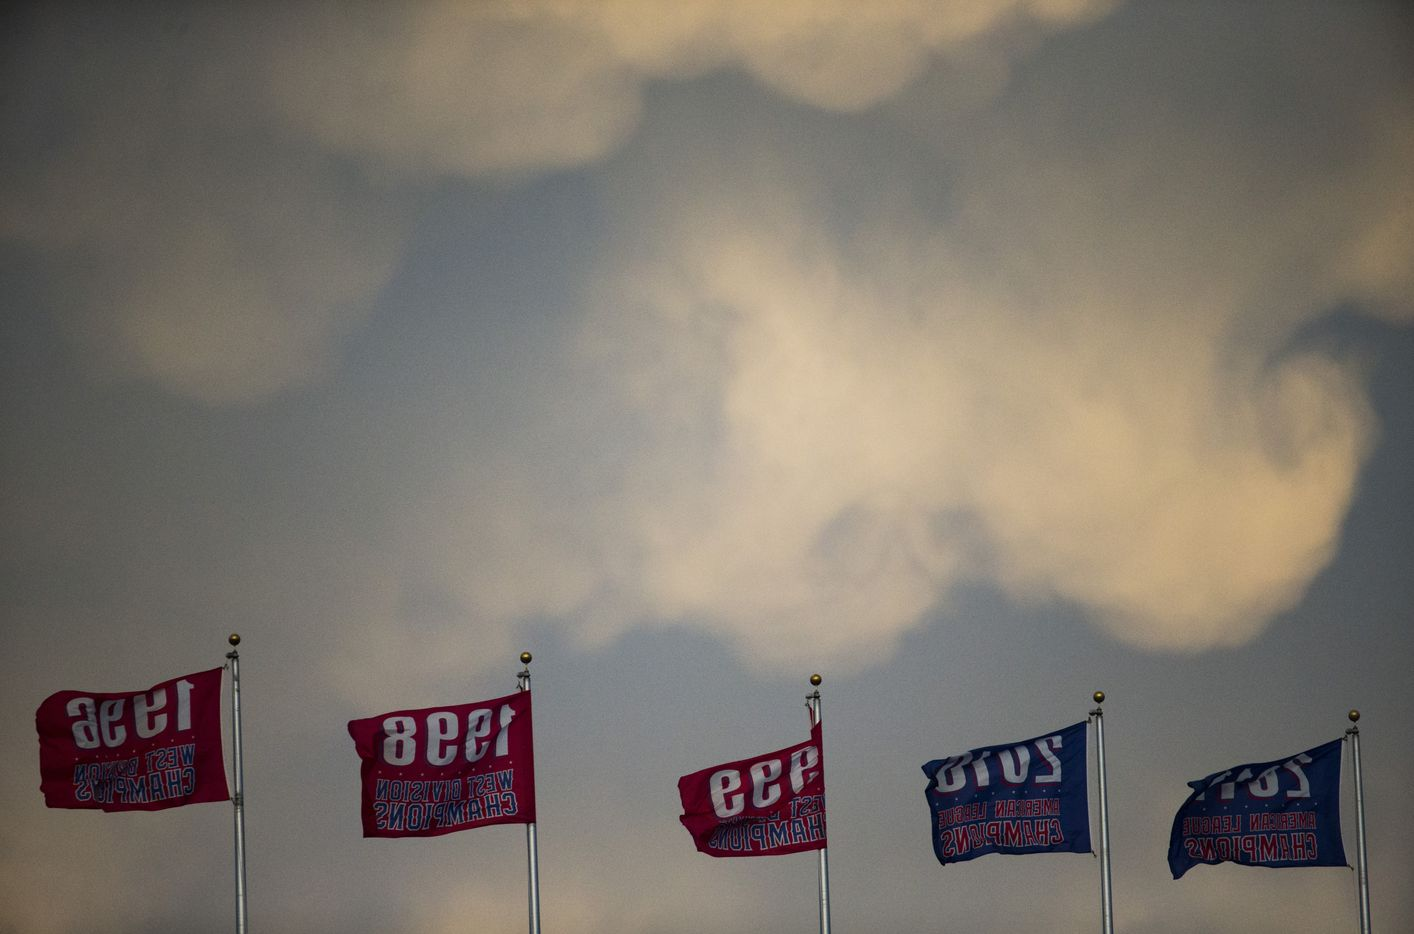 Storm clouds roll in over division championship flags between the second and third innings of an MLB game between the Texas Rangers and the Kansas City Royals on Friday, April 21, 2017 at Globe Life Park in Arlington, Texas.